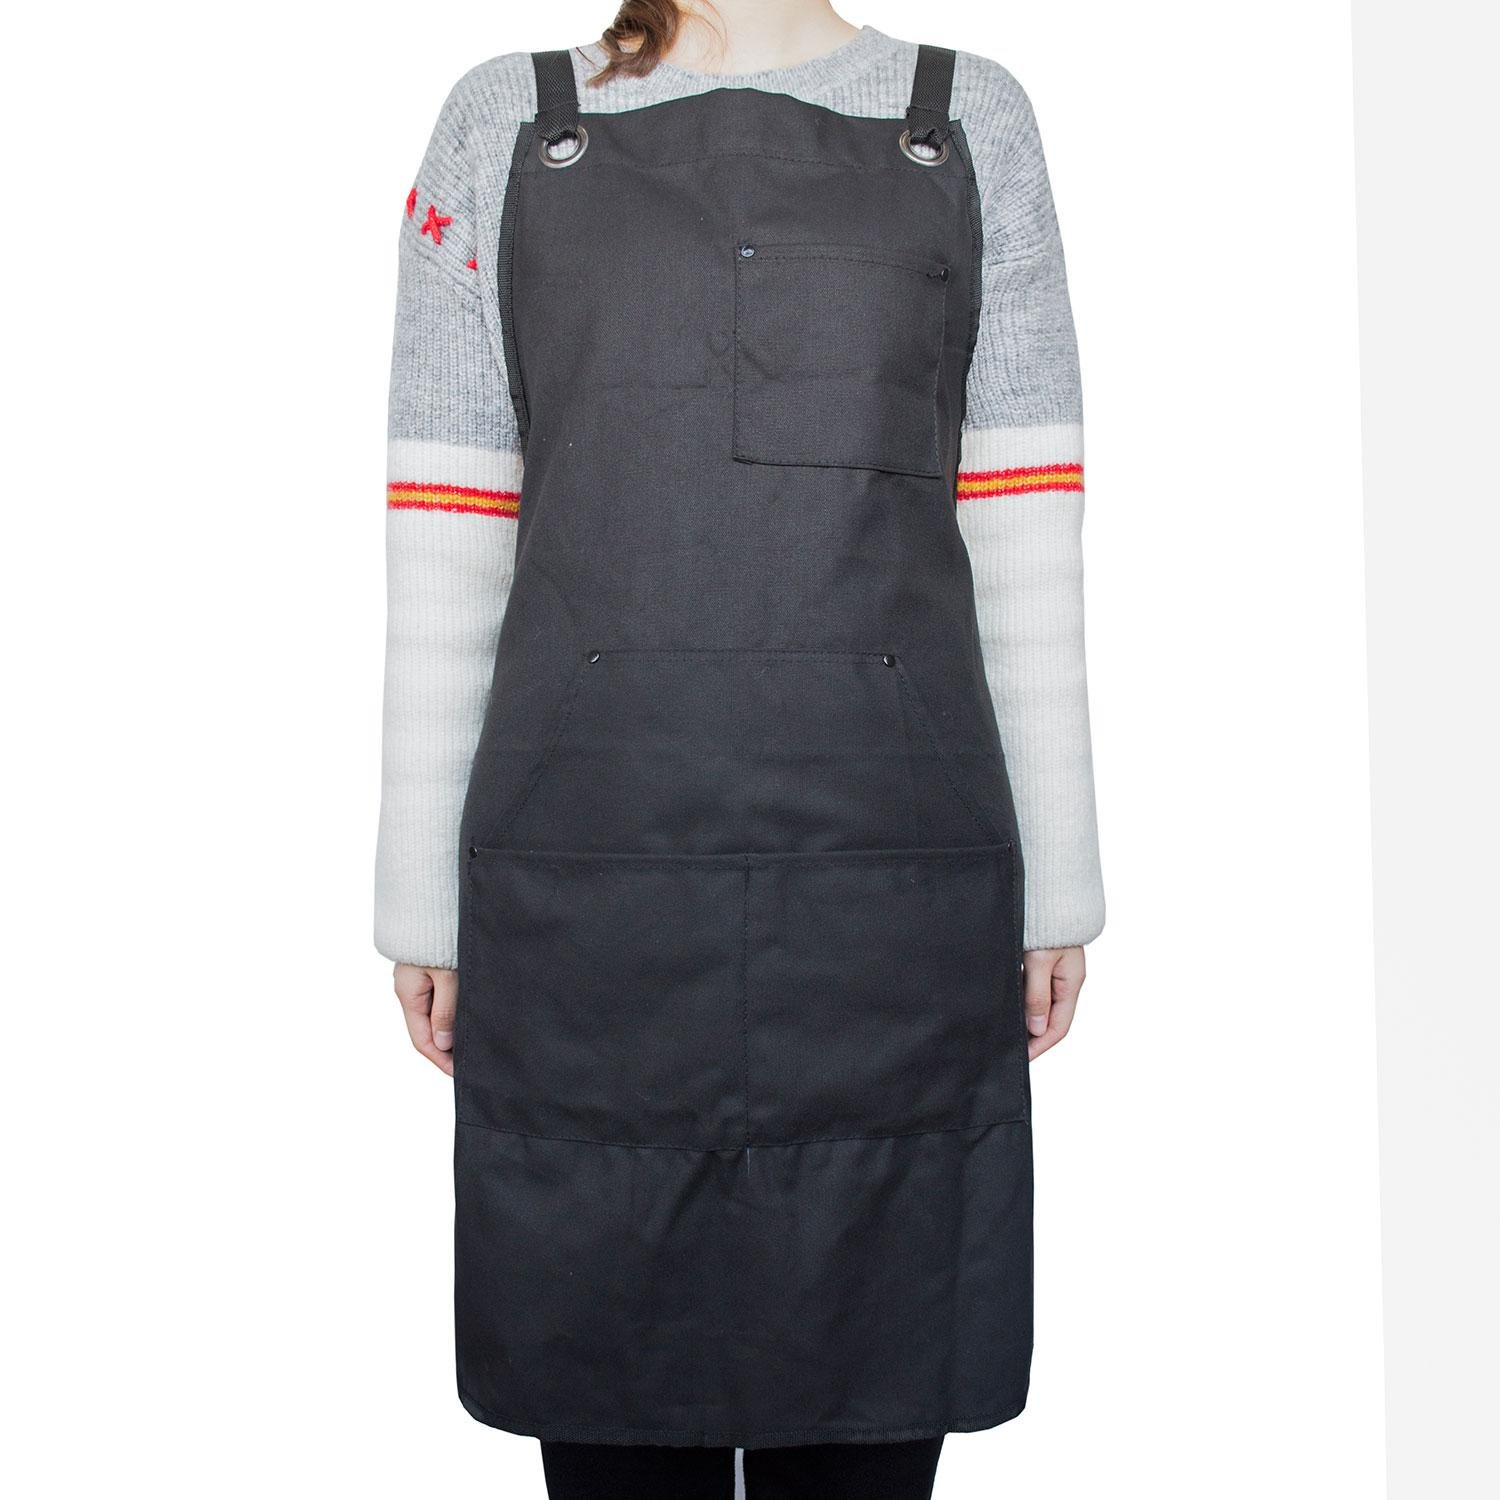 Work Apron for Man and Women, Aolvo 600D Oxford Canvas Apron with Tool Pockets, Cross-Back and Adjustable Straps, Suitable for Woodworking, Painting, Crafting, Cooking and Bartenders - Black